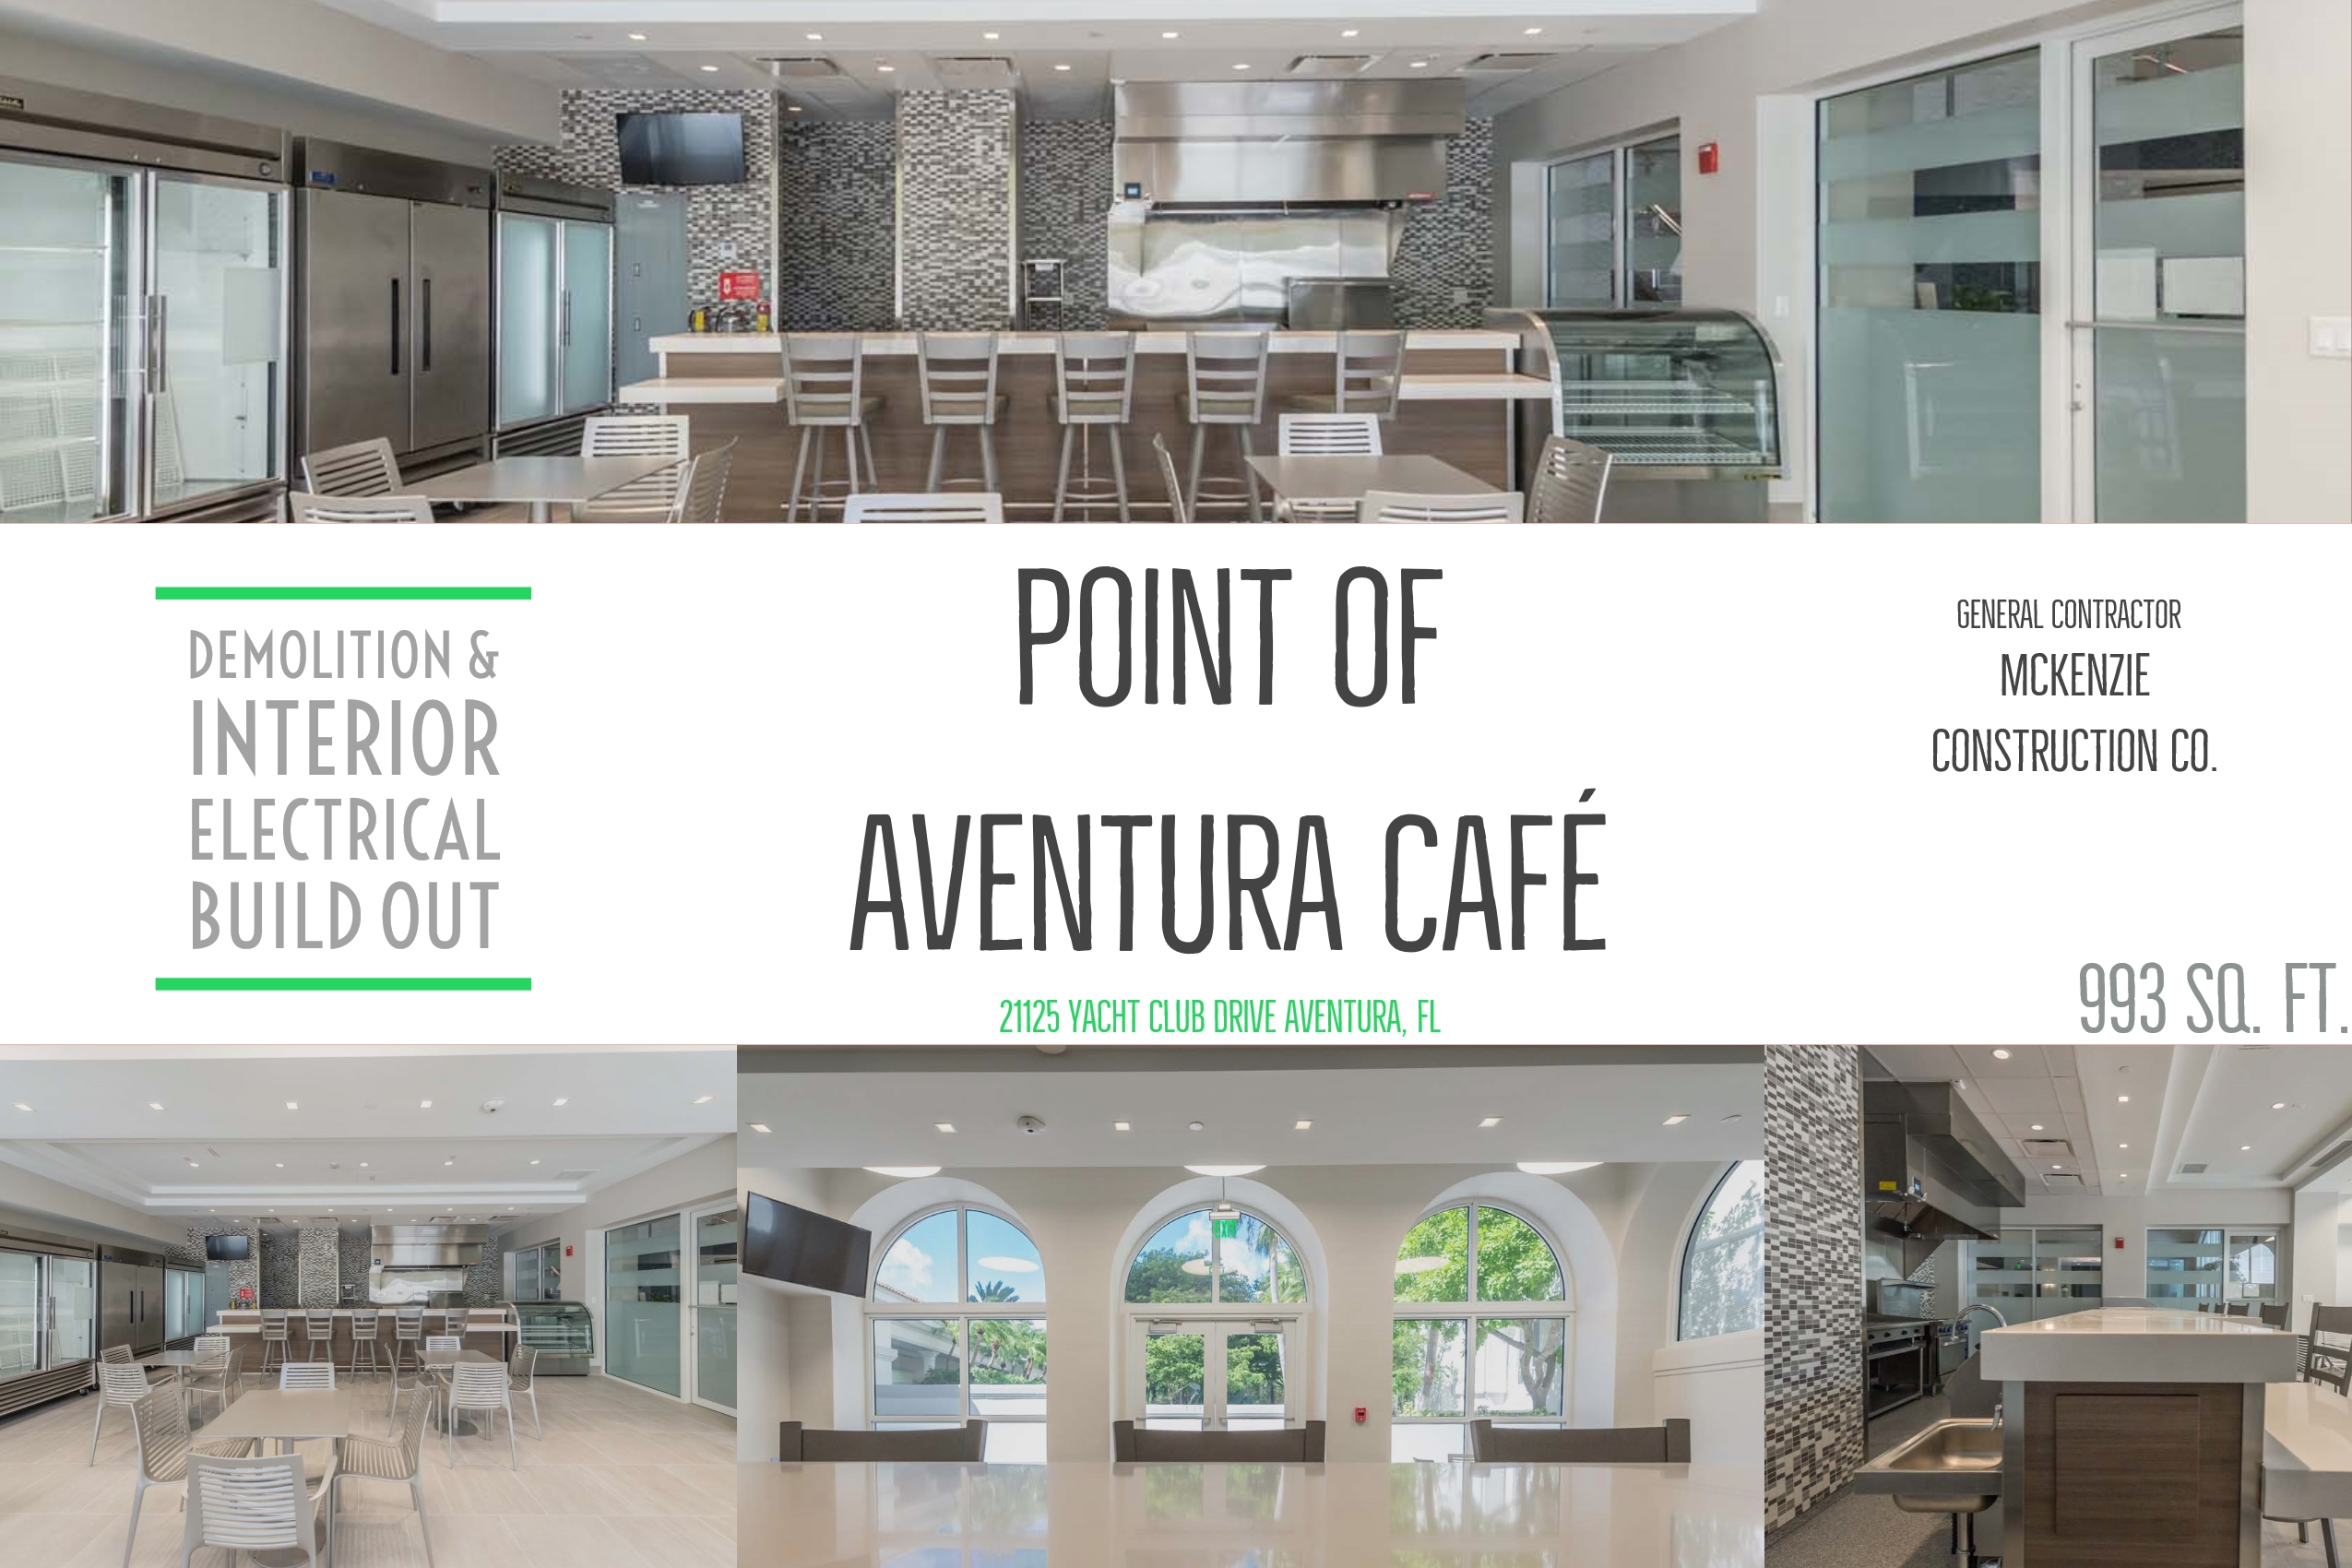 Point of Aventura Cafe, Aventura, FL